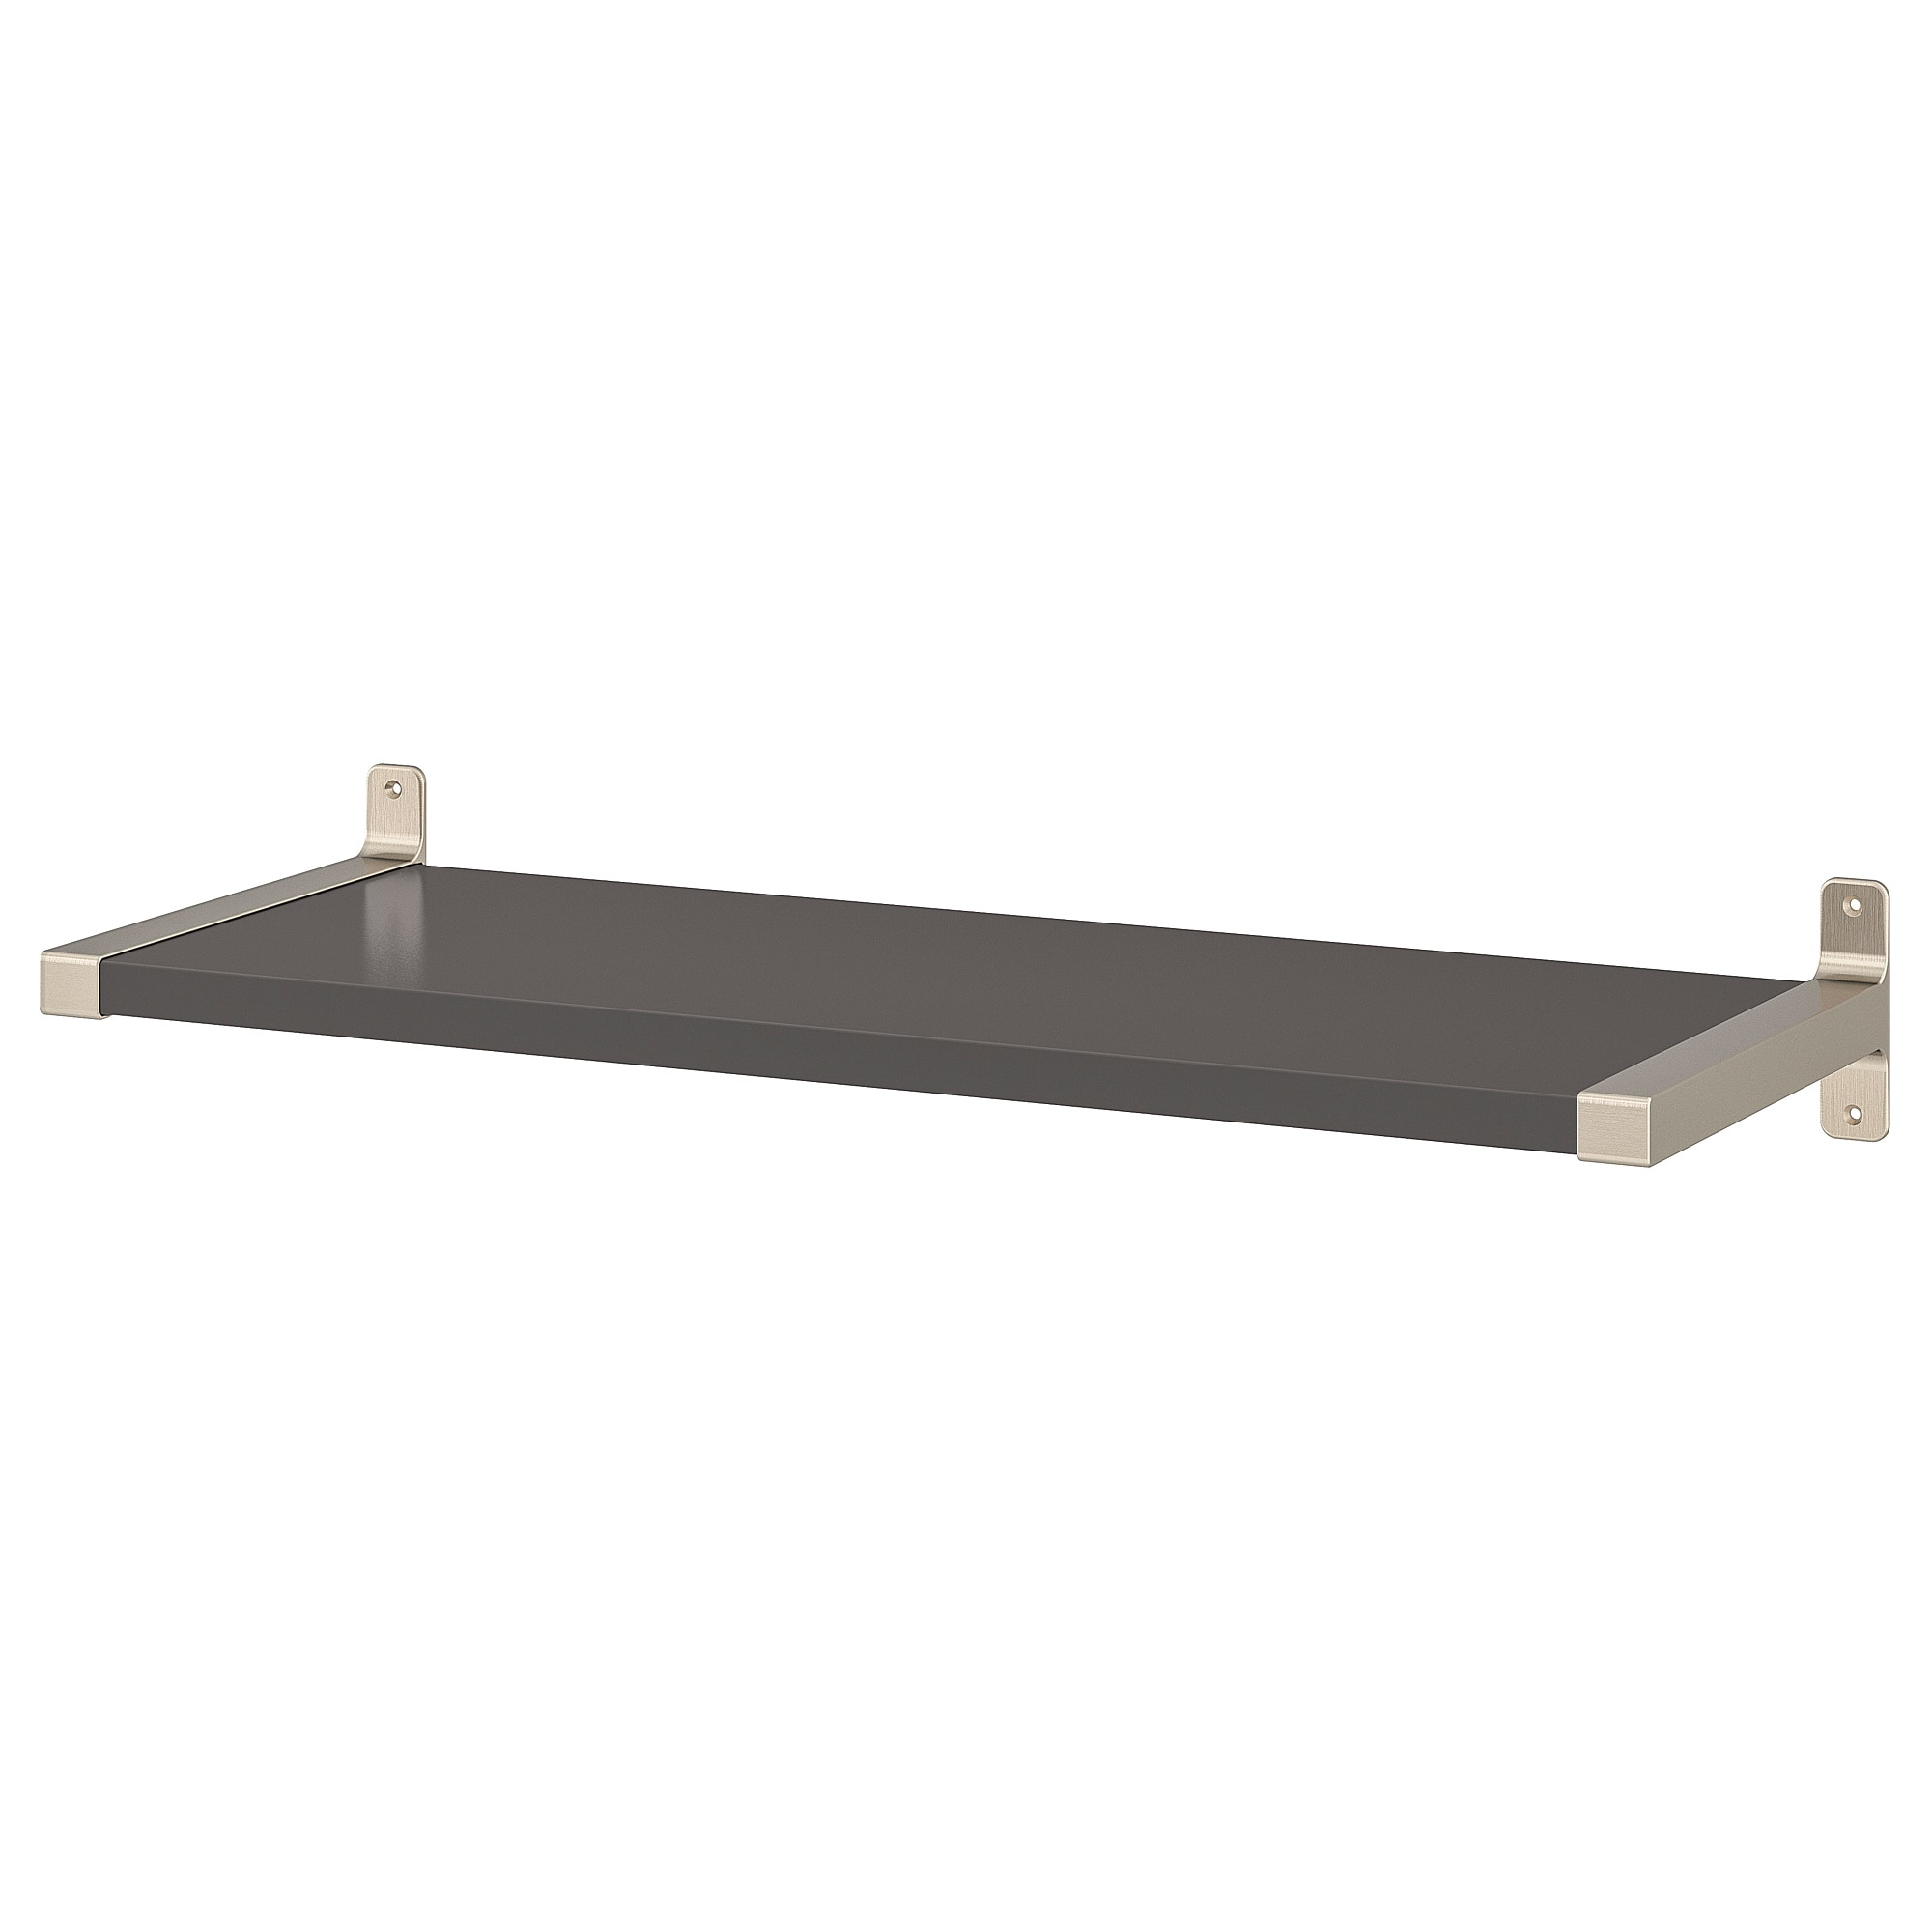 floating shelves wall shelf brackets ikea granhult bergshult dark grey nickel plated and cabinet cleats hemnes shoe storage vinyl tile underlayment concrete office furniture for